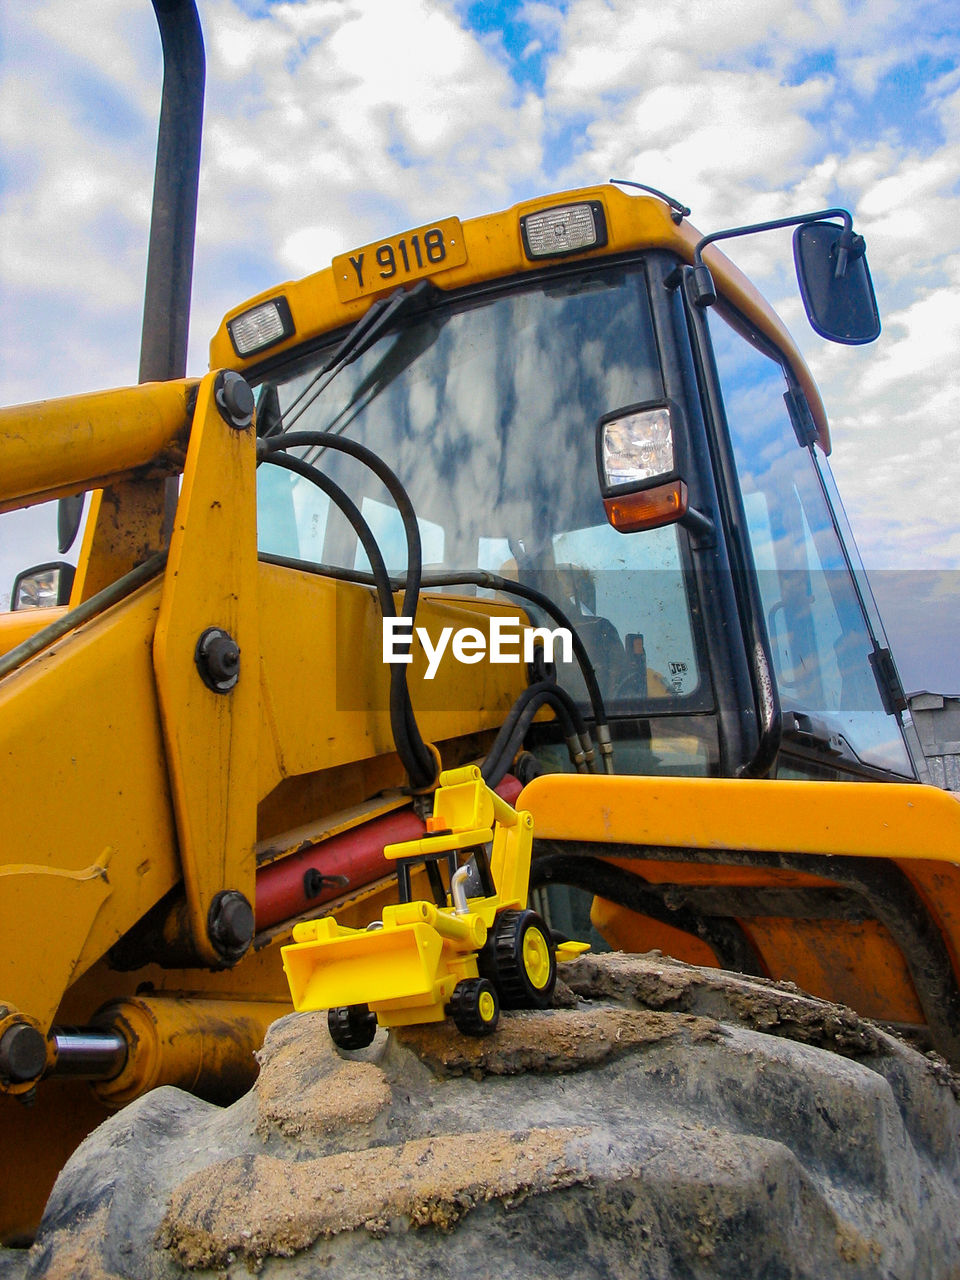 yellow, construction machinery, land vehicle, mode of transportation, earth mover, transportation, construction industry, bulldozer, construction site, day, construction vehicle, machinery, nature, cloud - sky, sky, outdoors, industry, no people, road construction, commercial land vehicle, construction equipment, school bus, junkyard, industrial equipment